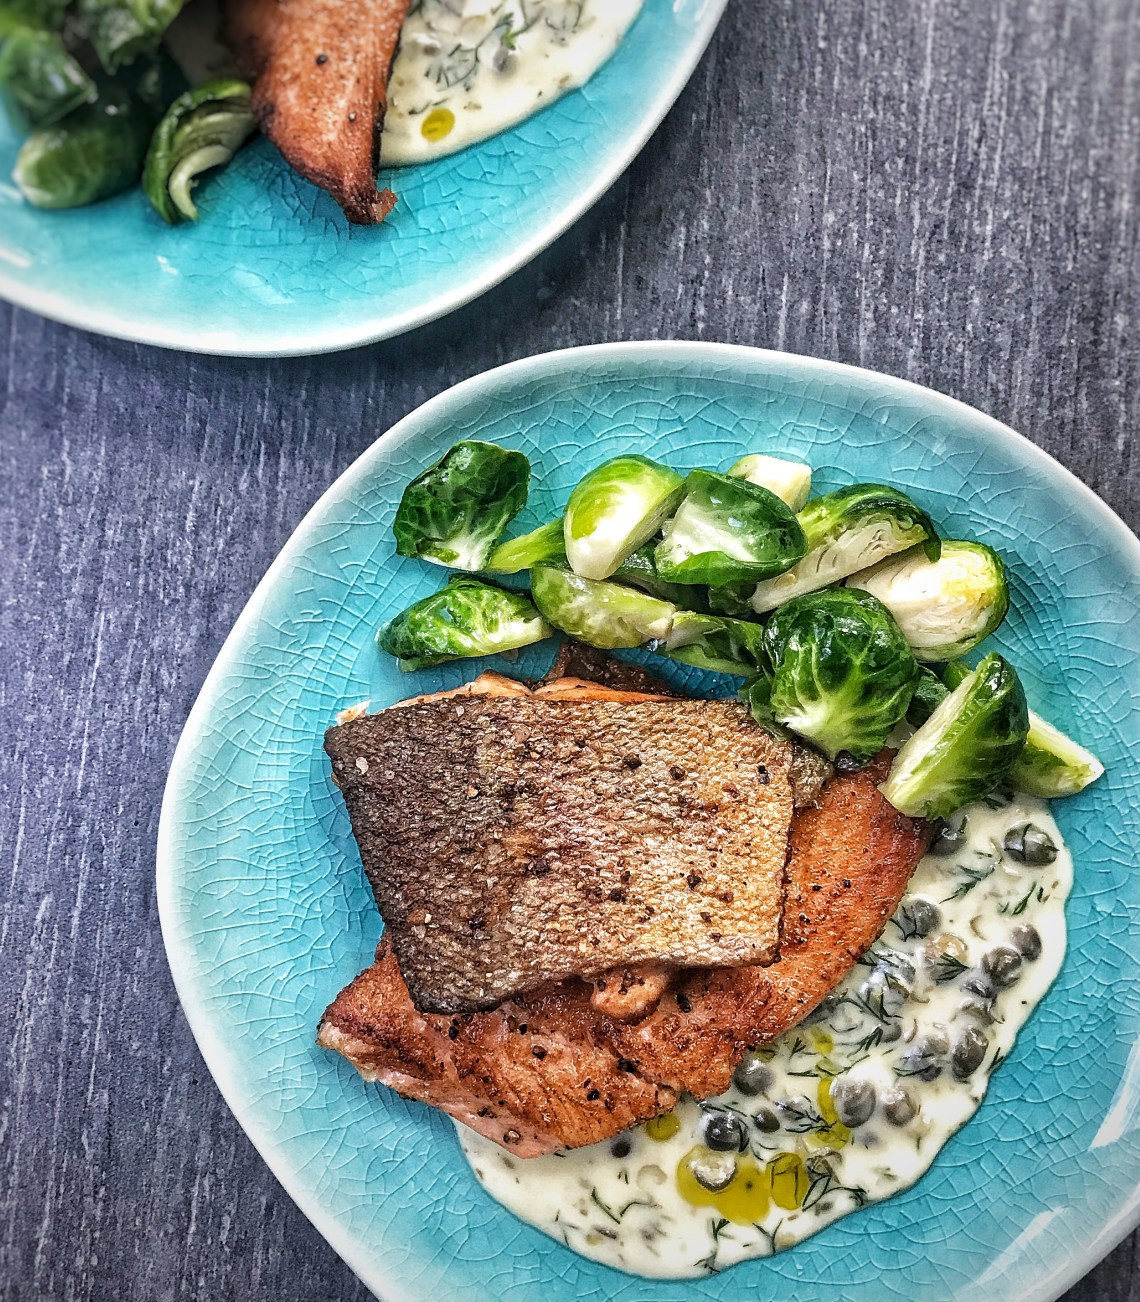 Pan-seared trout with creamy caper dill sauce and butter-roasted Brussels sprouts